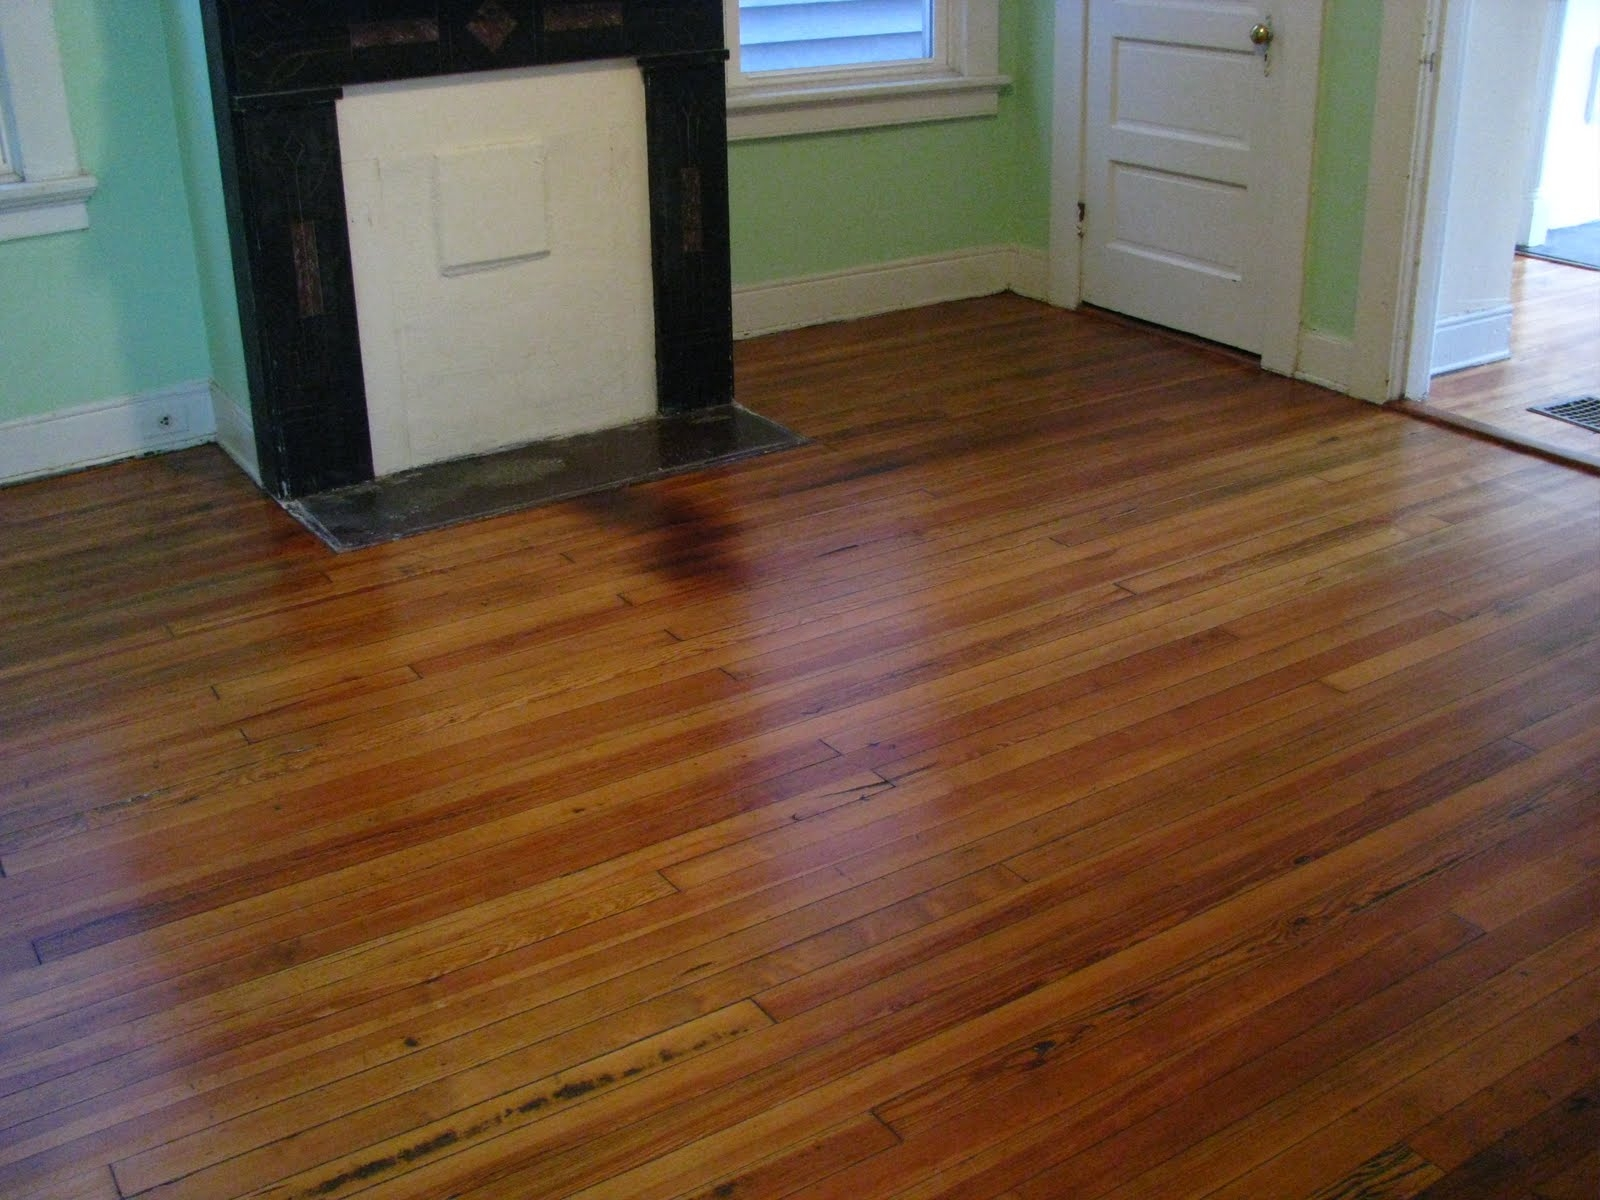 Seal Wood Floor Under Carpetremodelaholic refinished wood floors previously under carpet